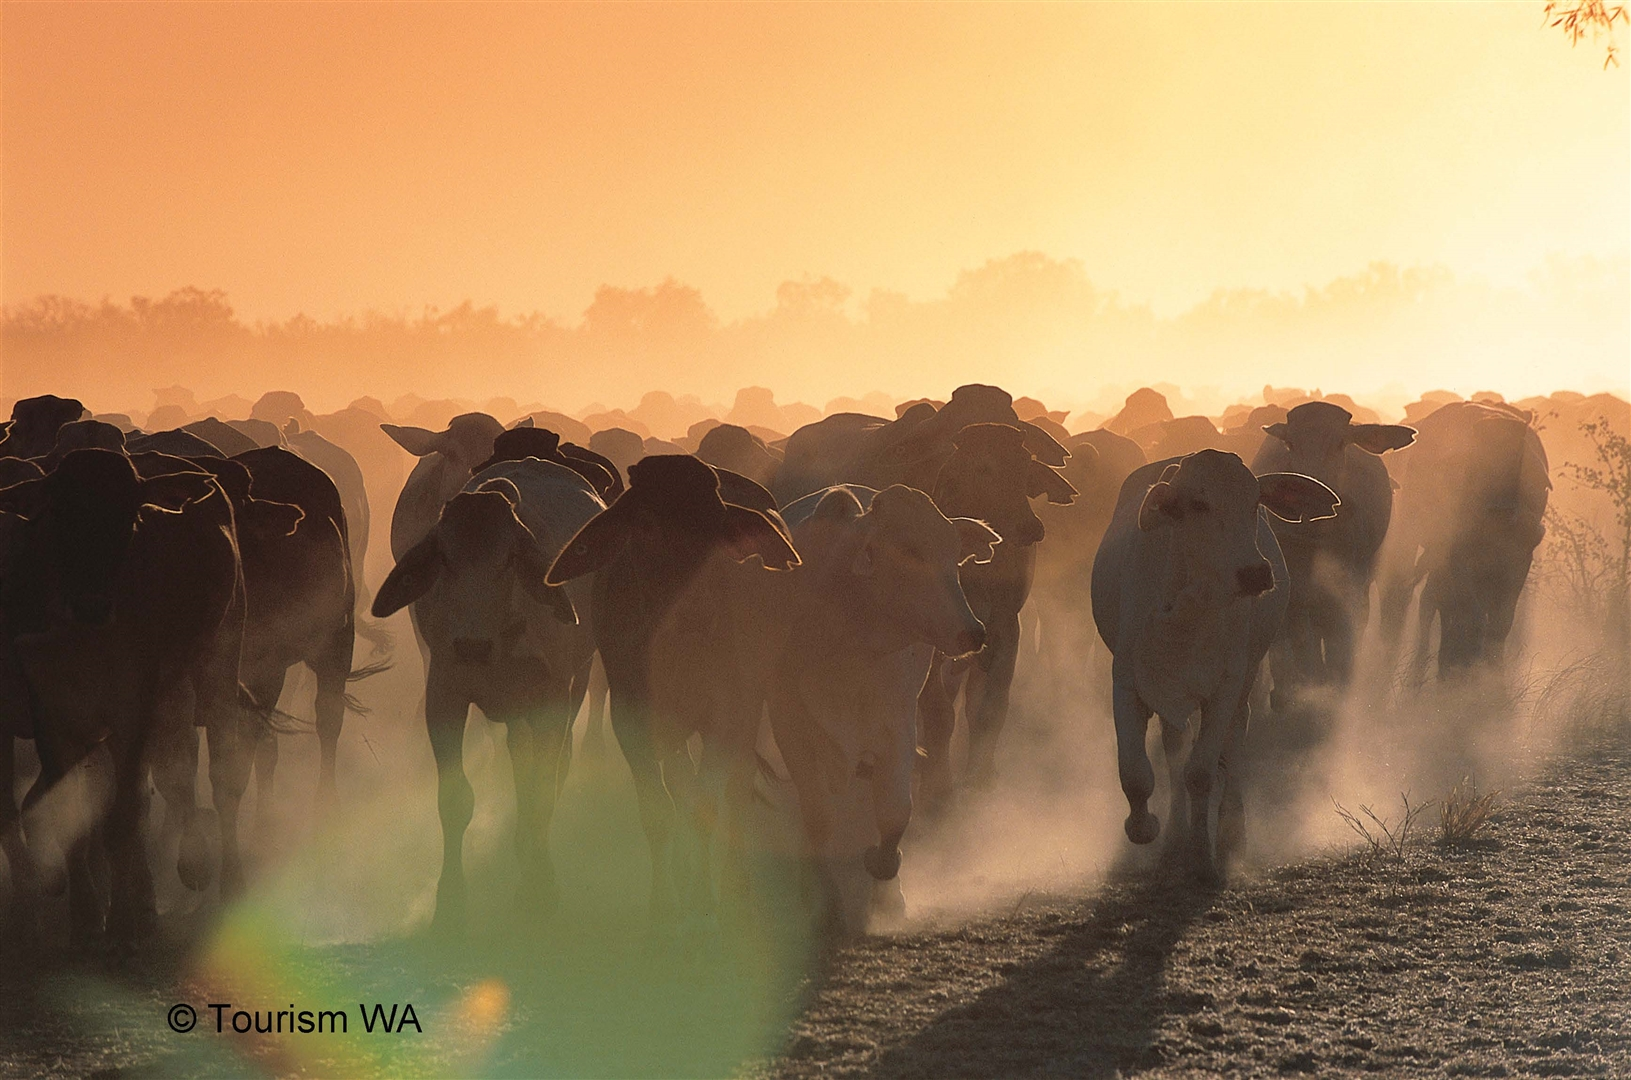 Tourism Western Australia Cattle Muster on a Kimberley Cattle Station Watermark